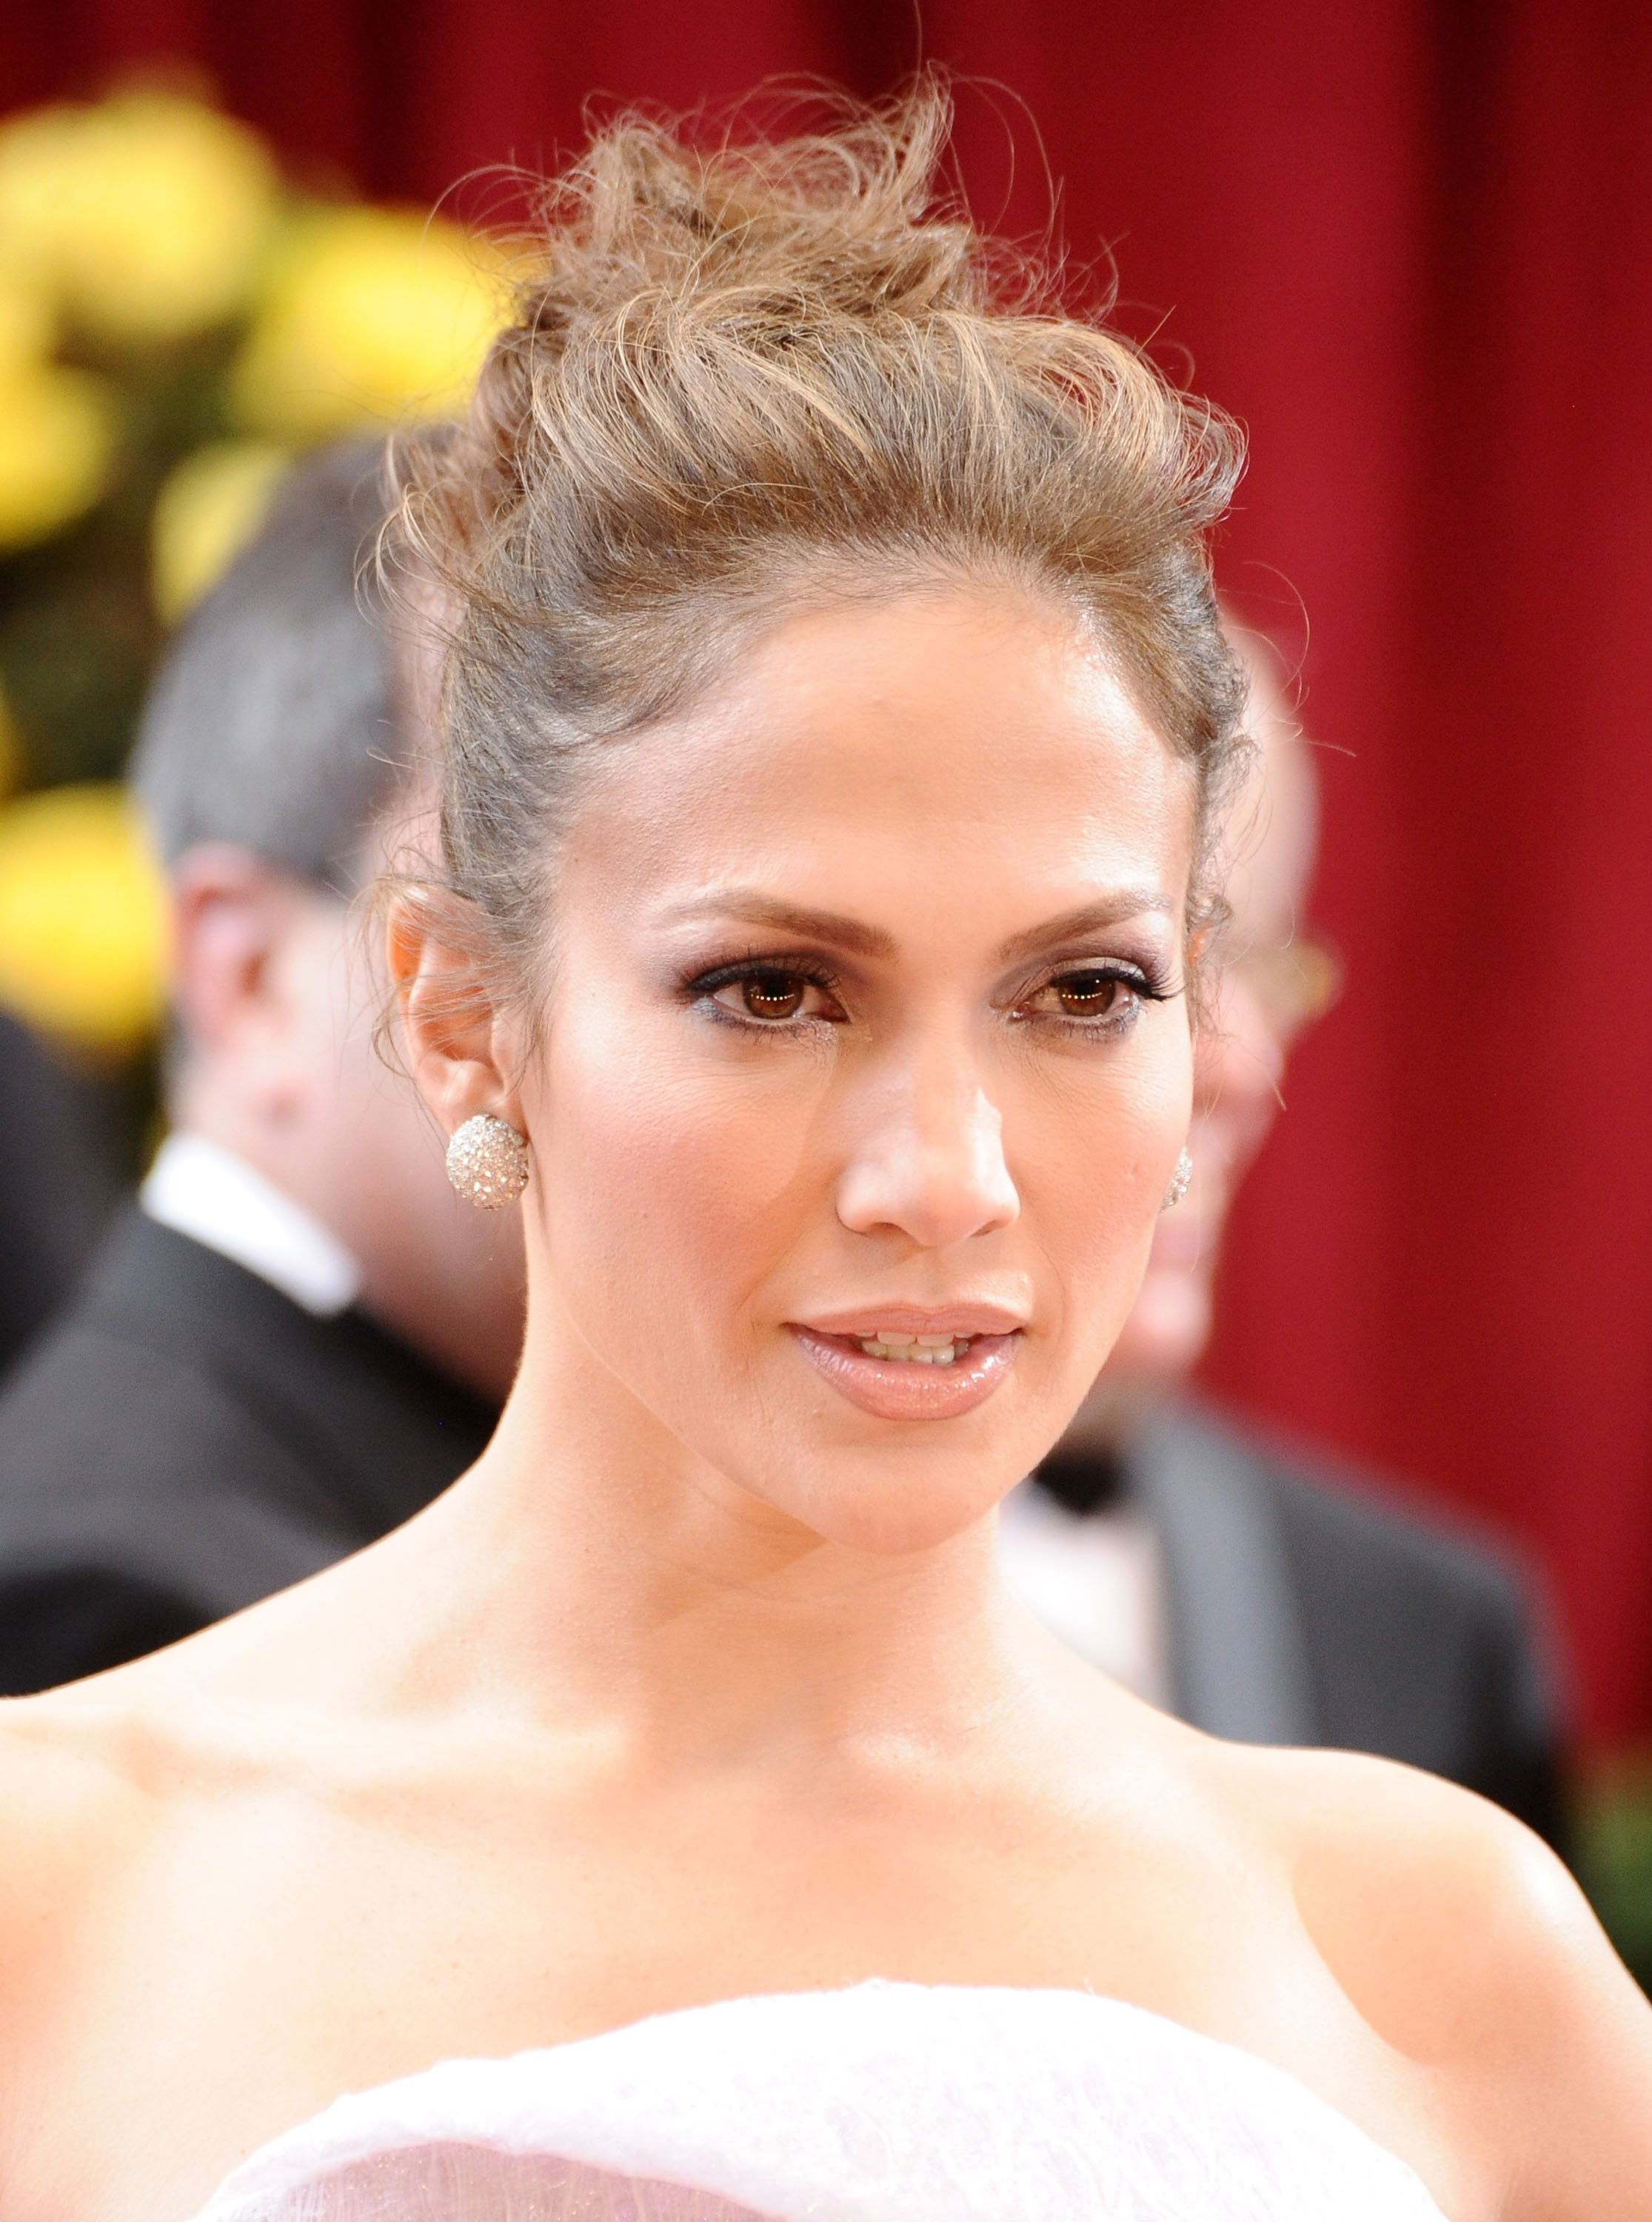 Jennifer Lopez at the 82nd annual Academy Words in Hollywood, California on March 7, 2010. | Photo: Getty Images.